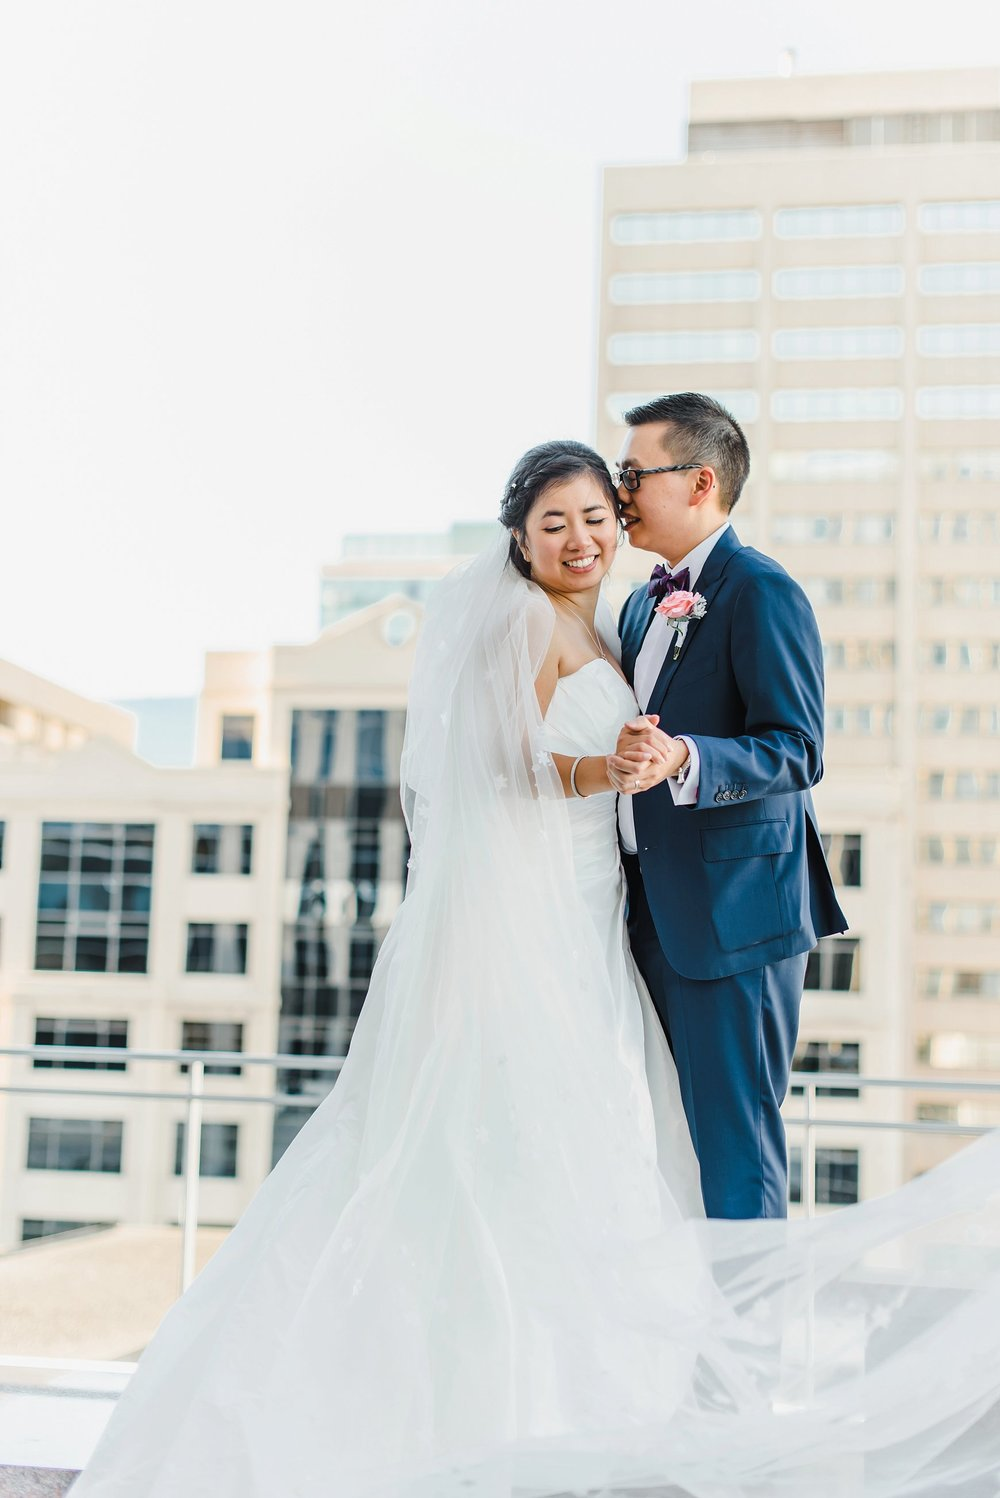 light airy indie fine art ottawa wedding photographer | Ali and Batoul Photography_1528.jpg